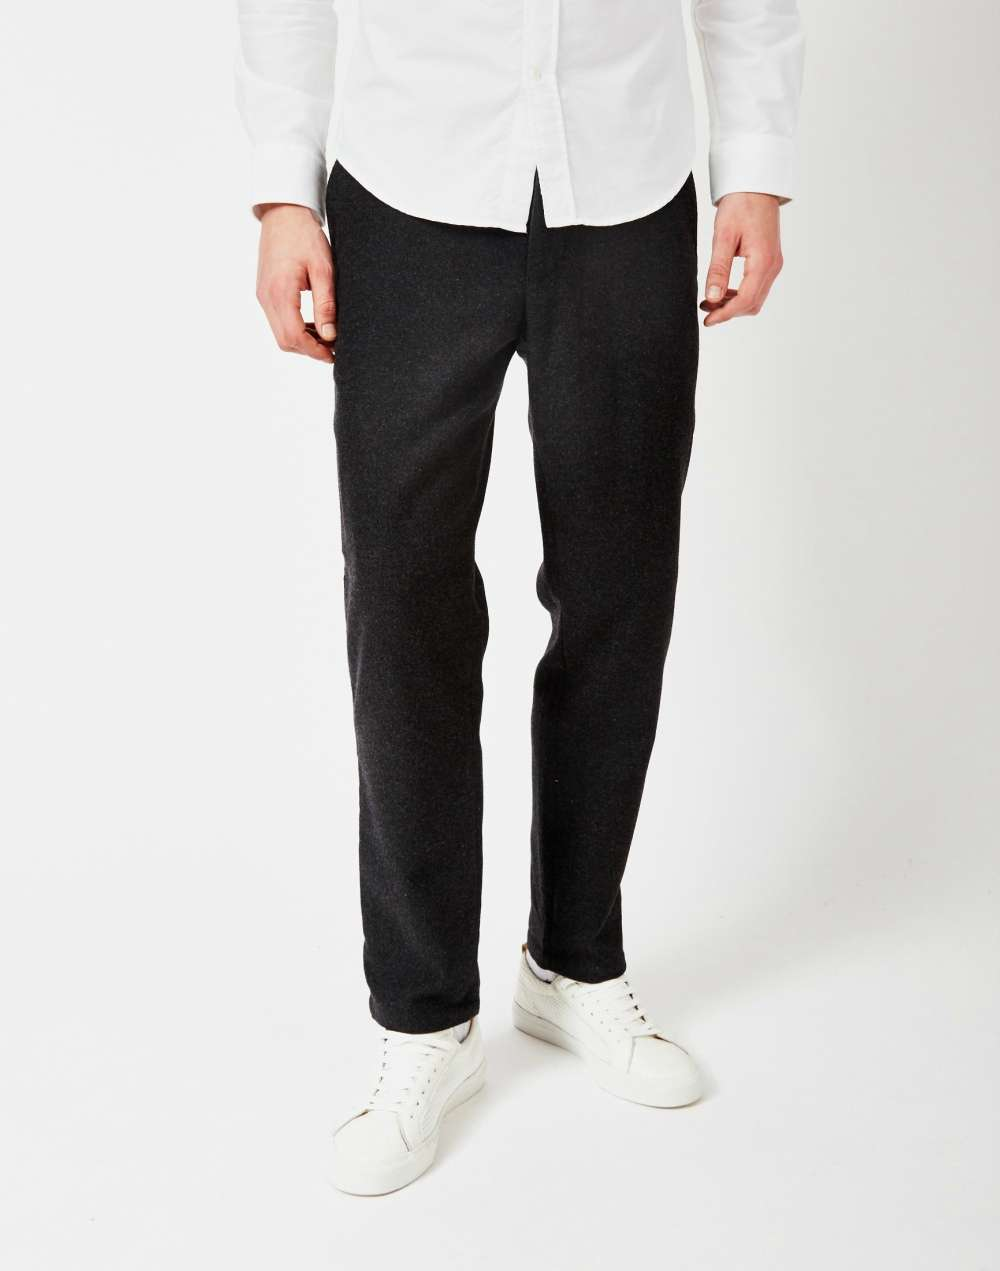 GANT RUGGER Textured Smarty Pants Blue